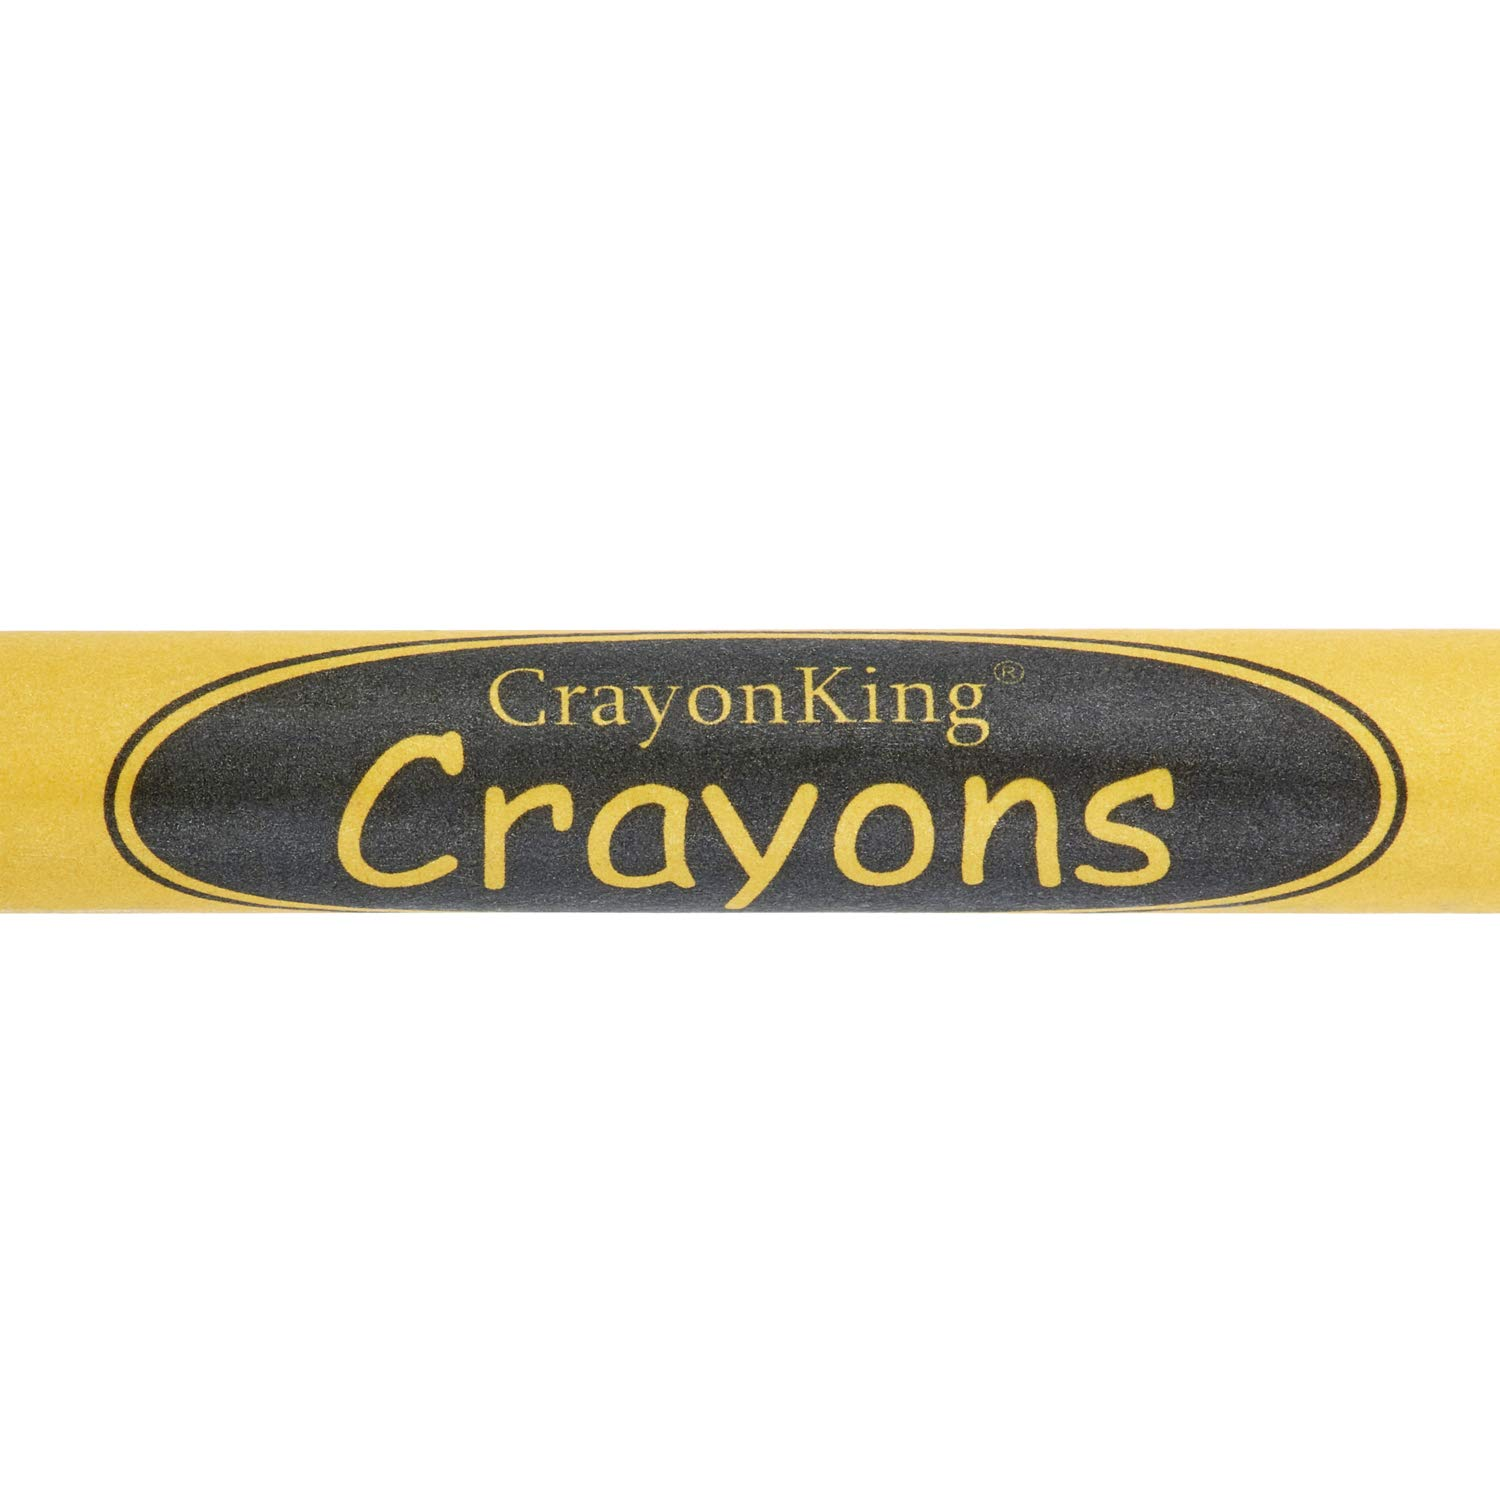 CrayonKing 500 4-Packs of Crayons in a Cello Bag by CrayonKing (Image #4)